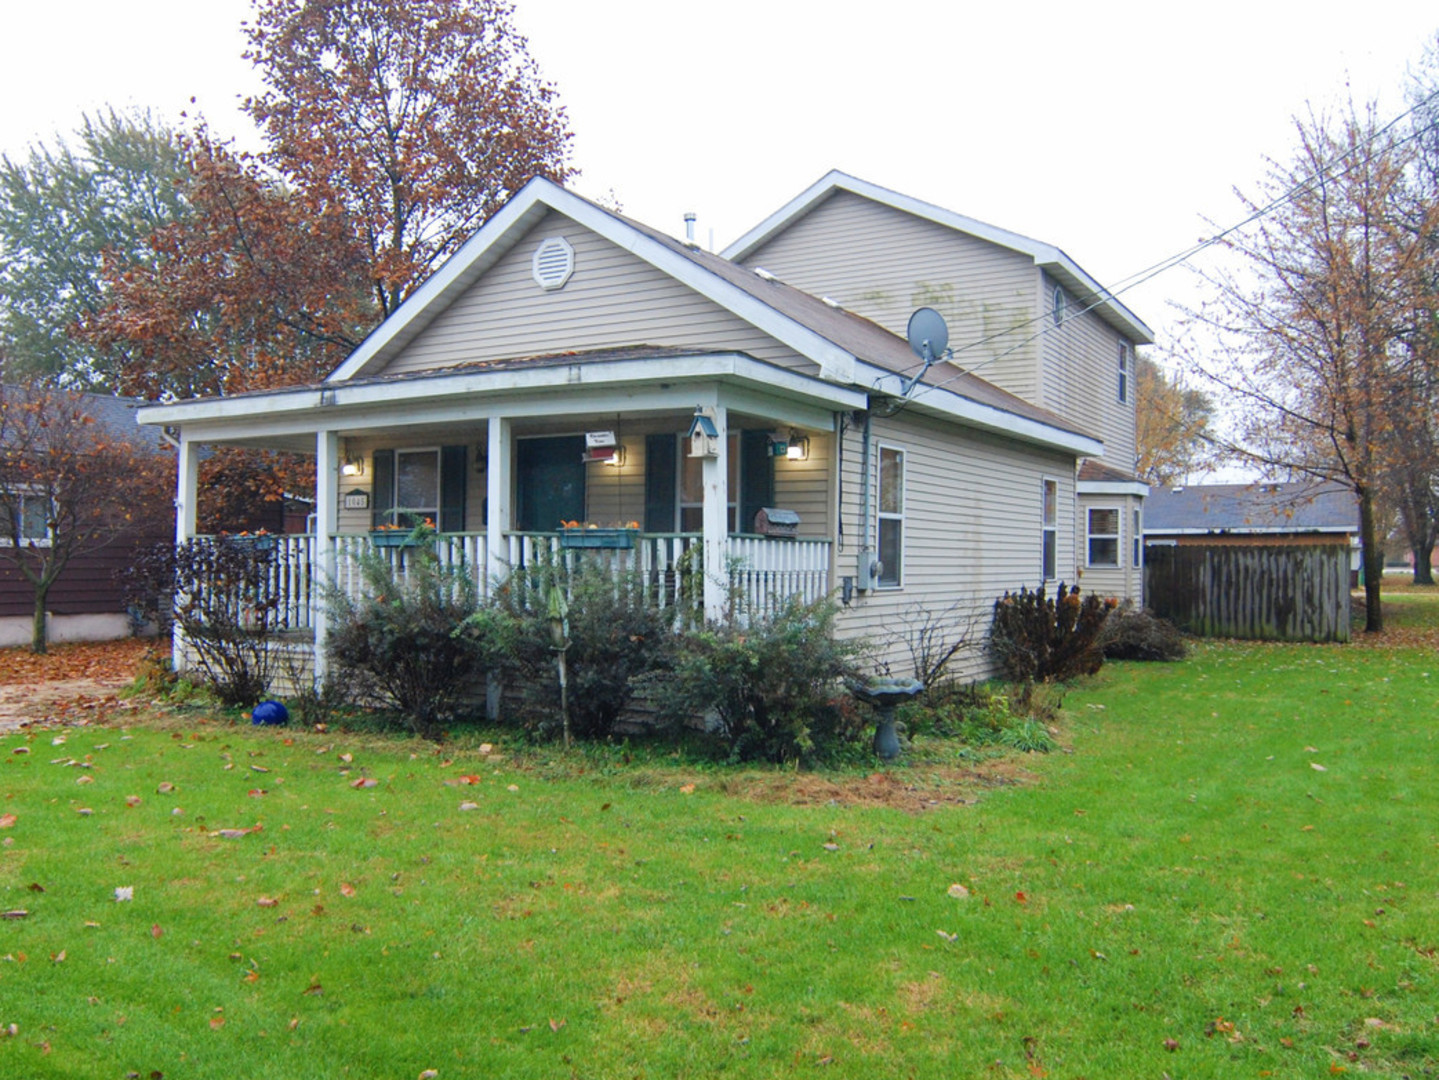 Property for sale at 1045 East 1st Street, Coal City,  IL 60416